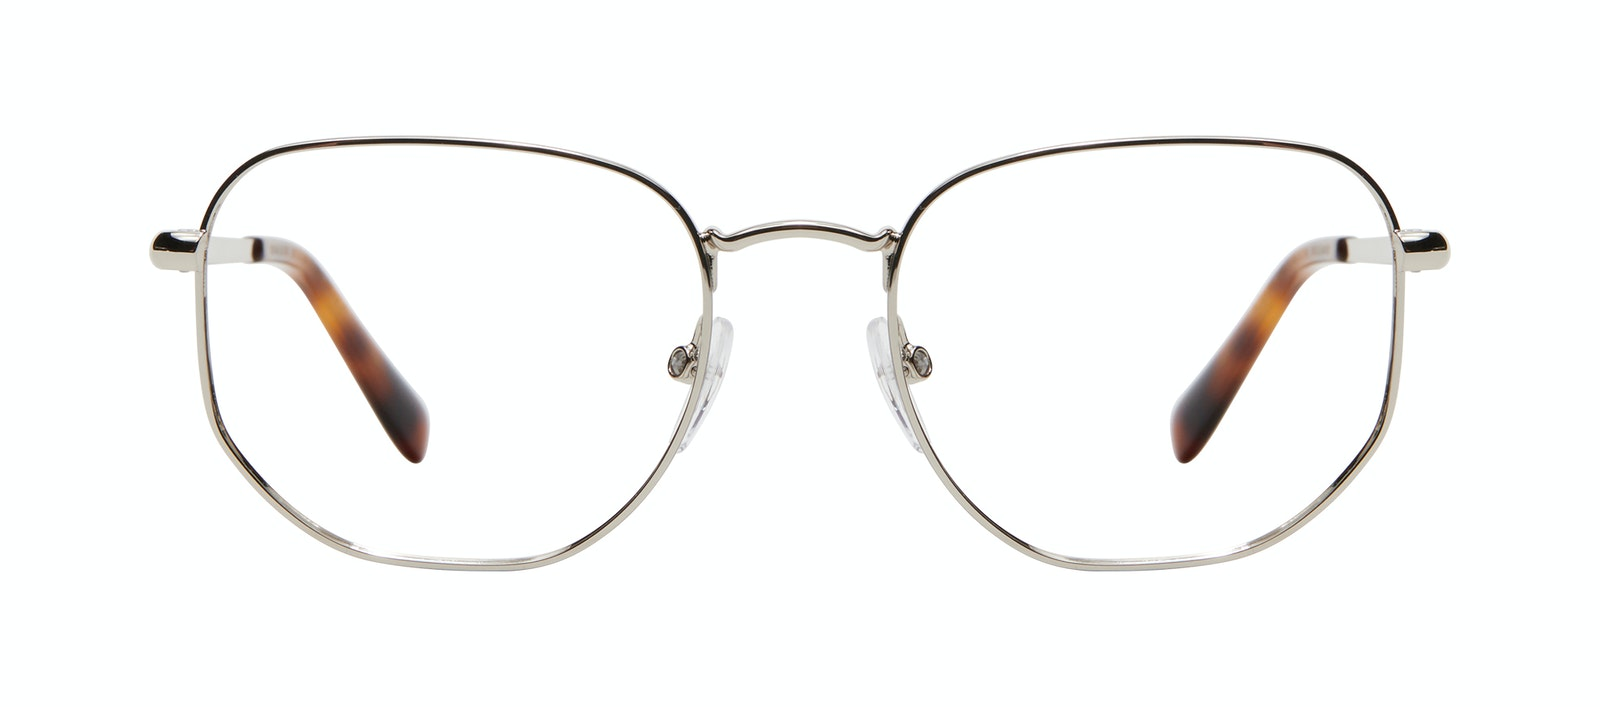 Affordable Fashion Glasses Square Eyeglasses Men Global L Silver Front